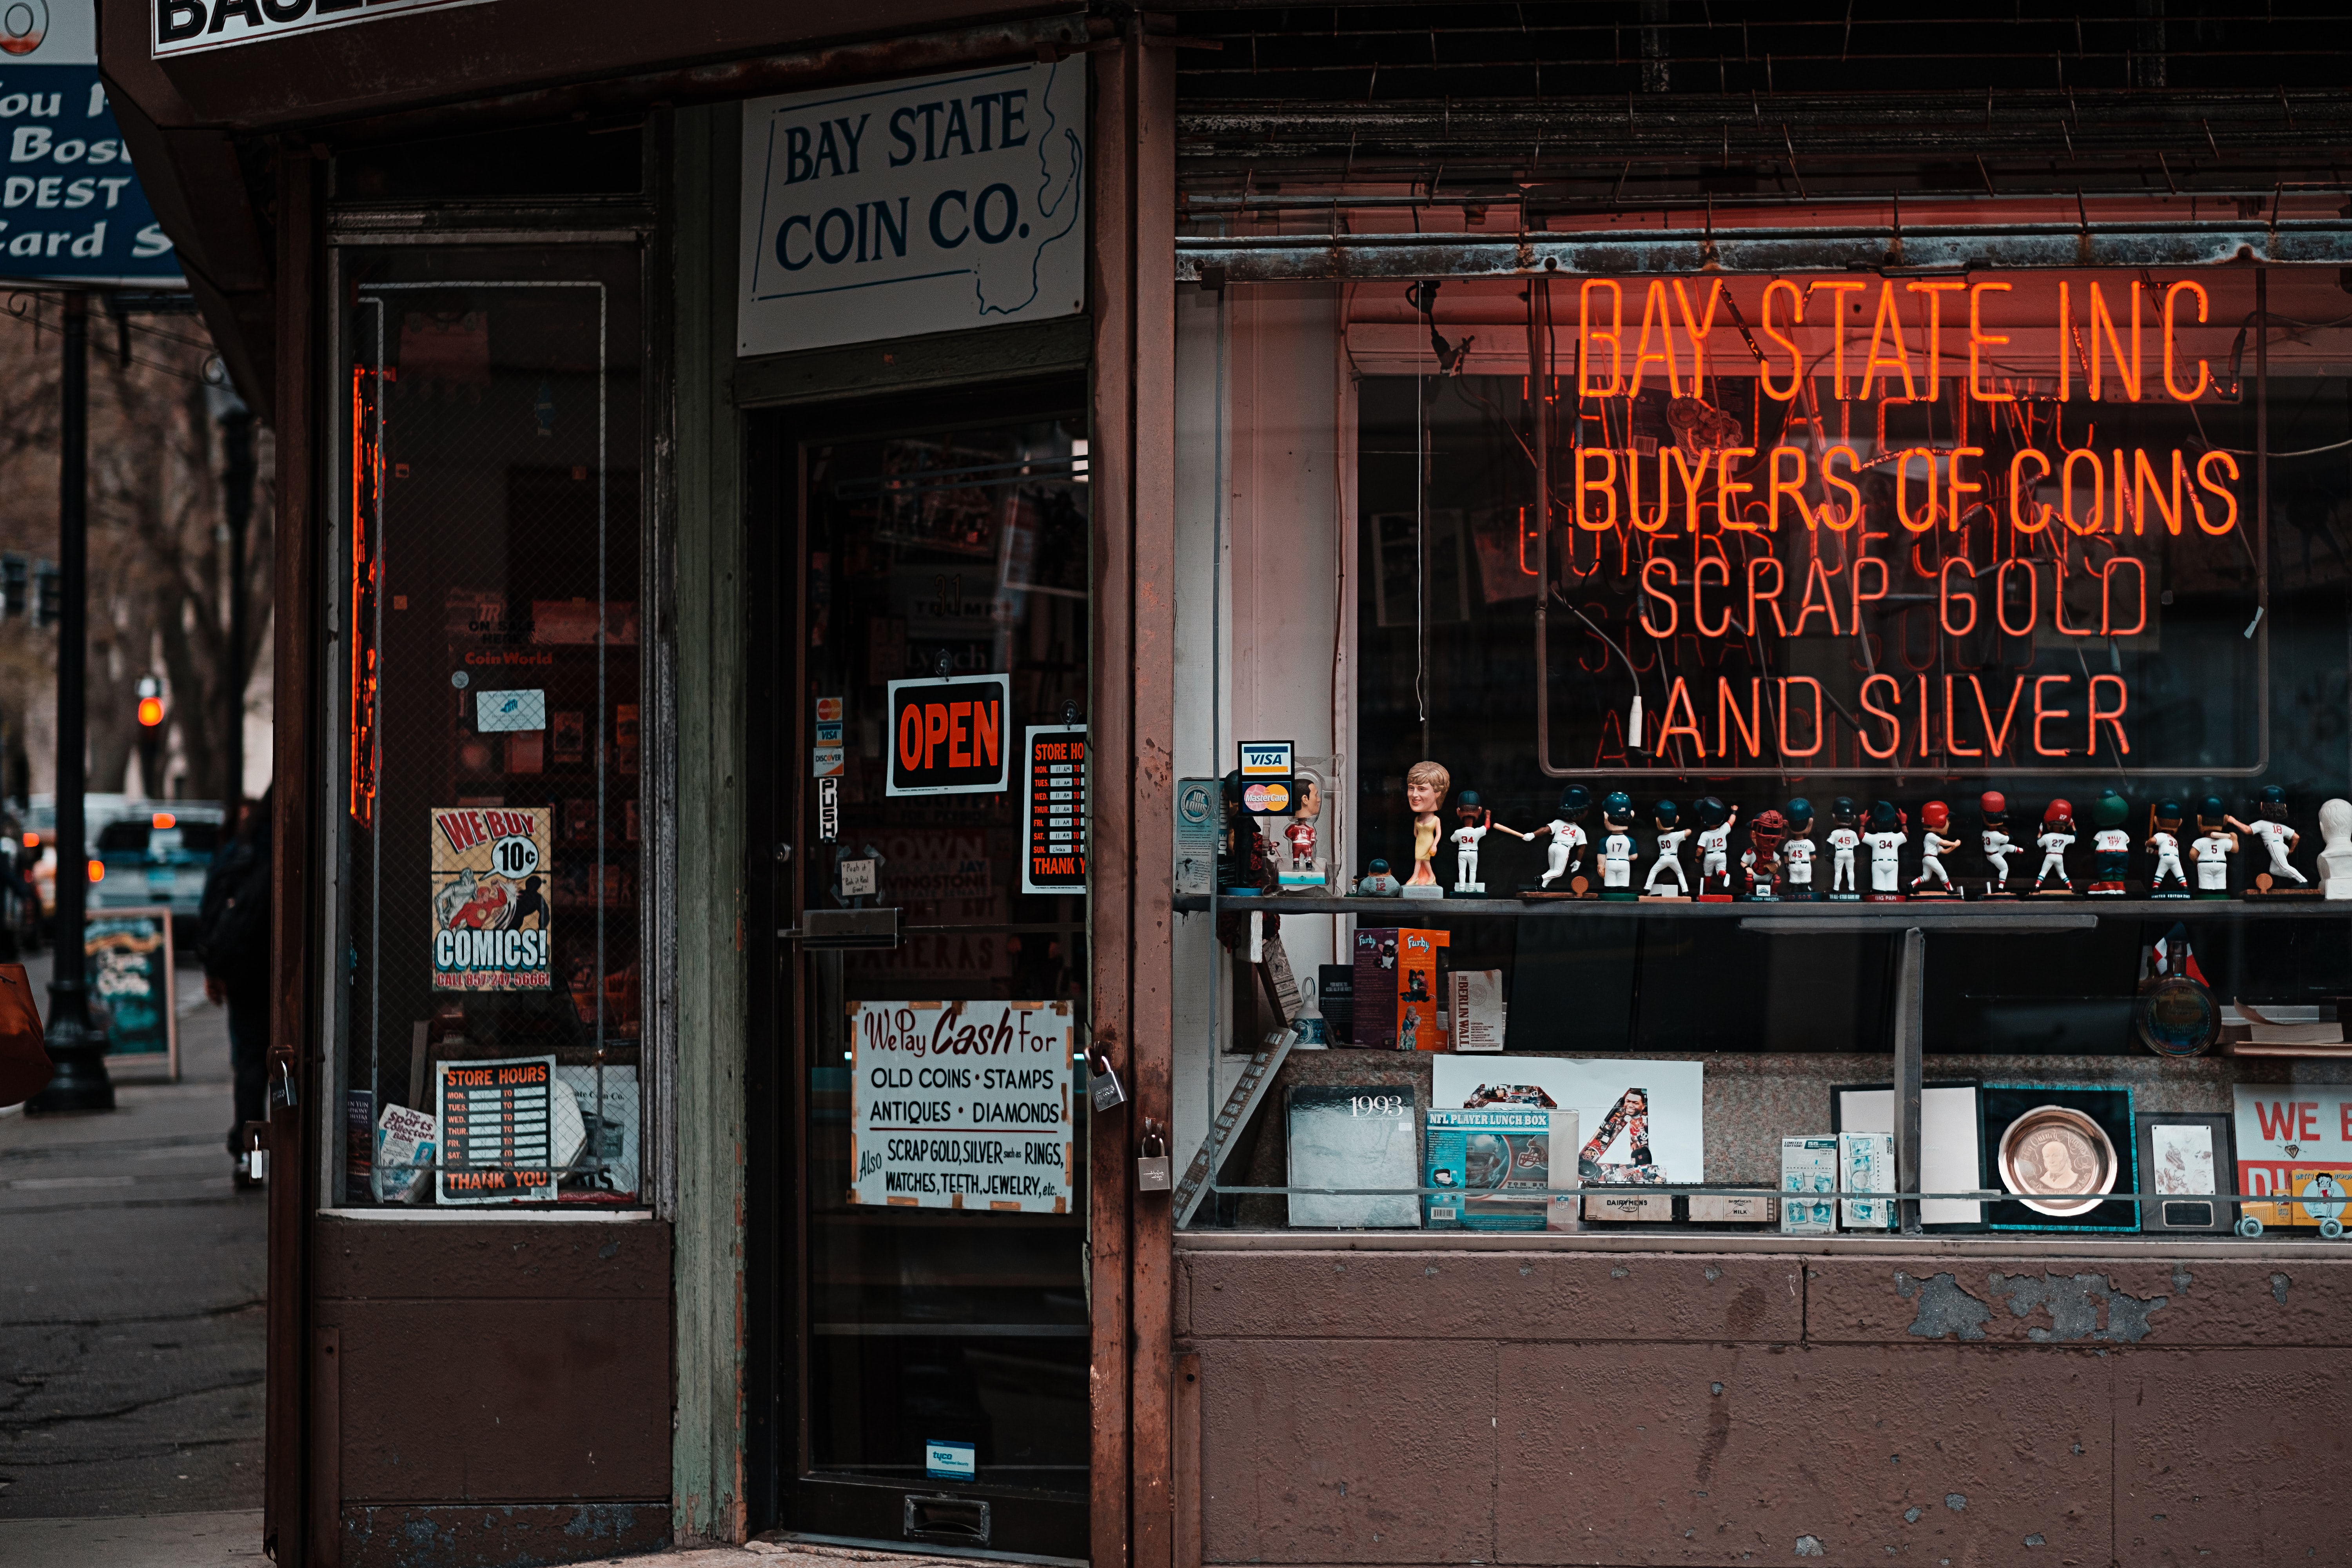 A coin and antique buyer storefront with a neon sign